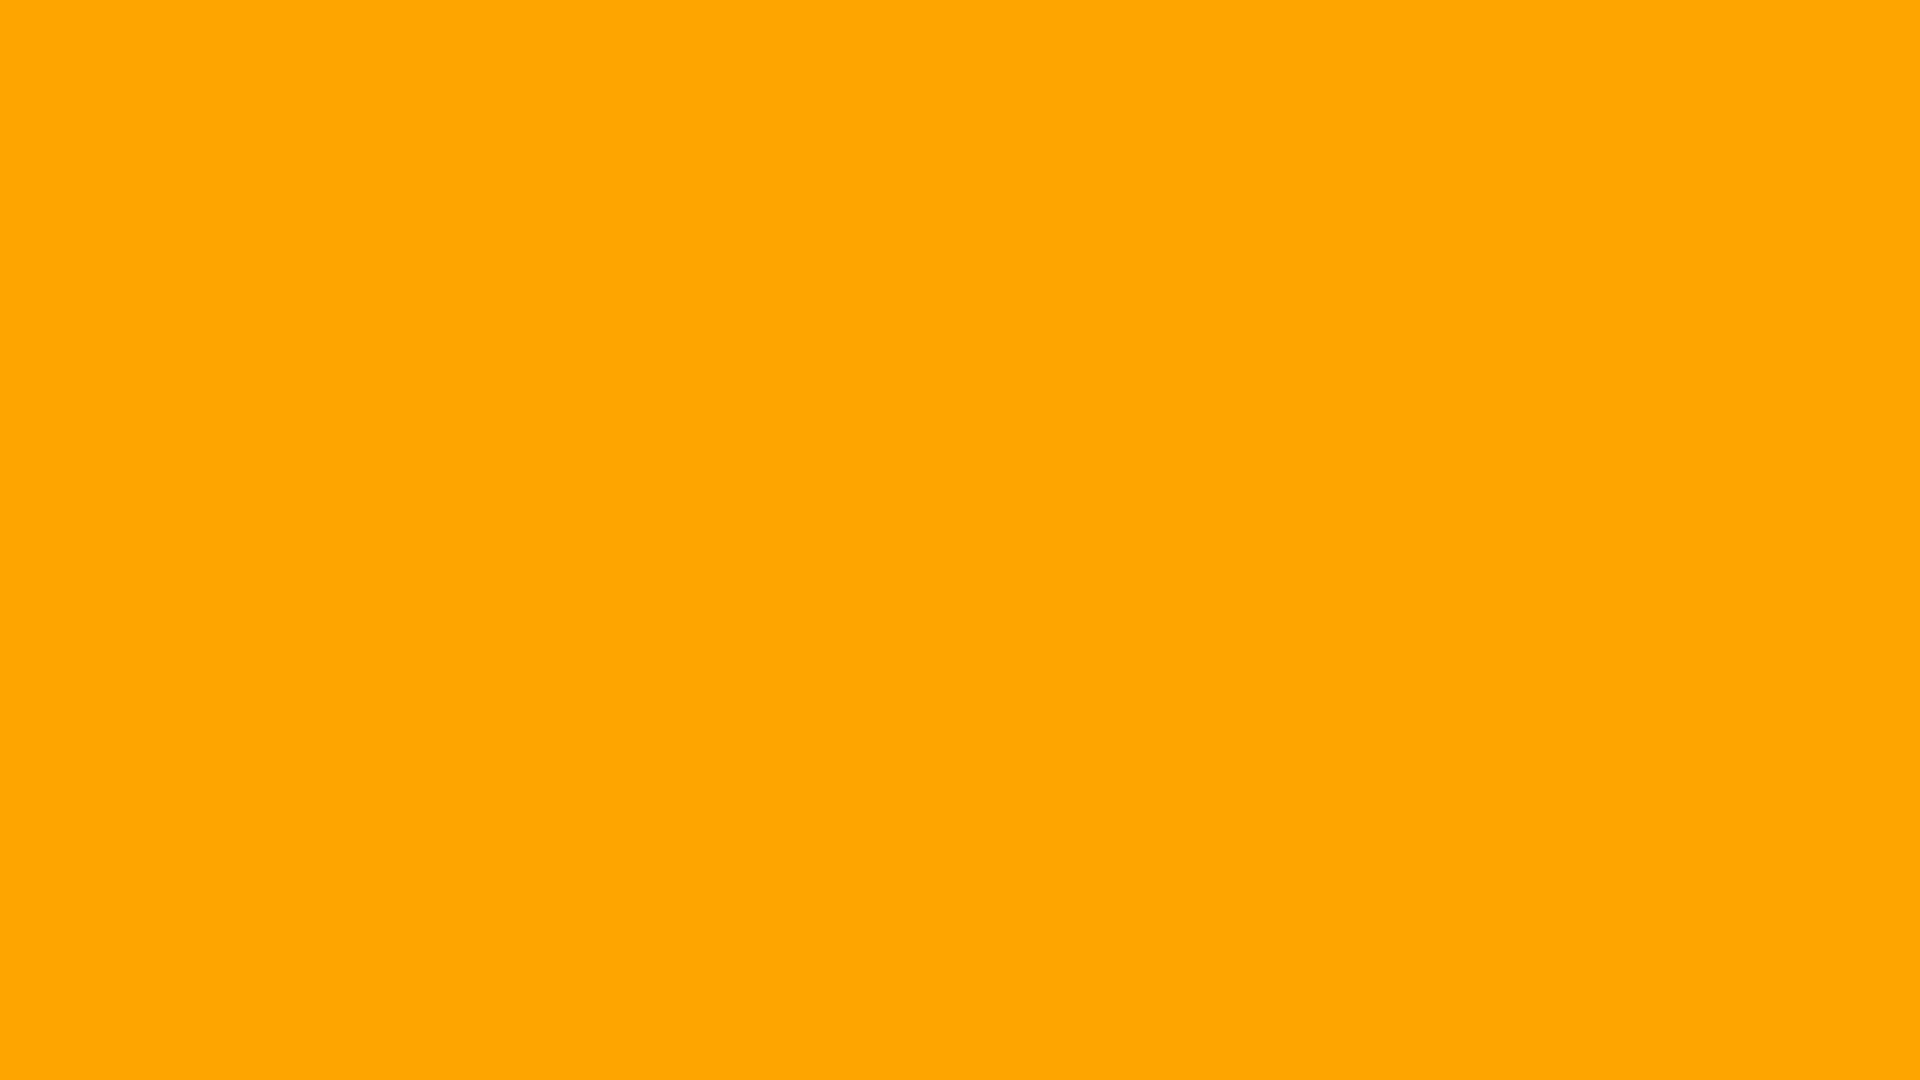 1920x1080 Orange Web Solid Color Background